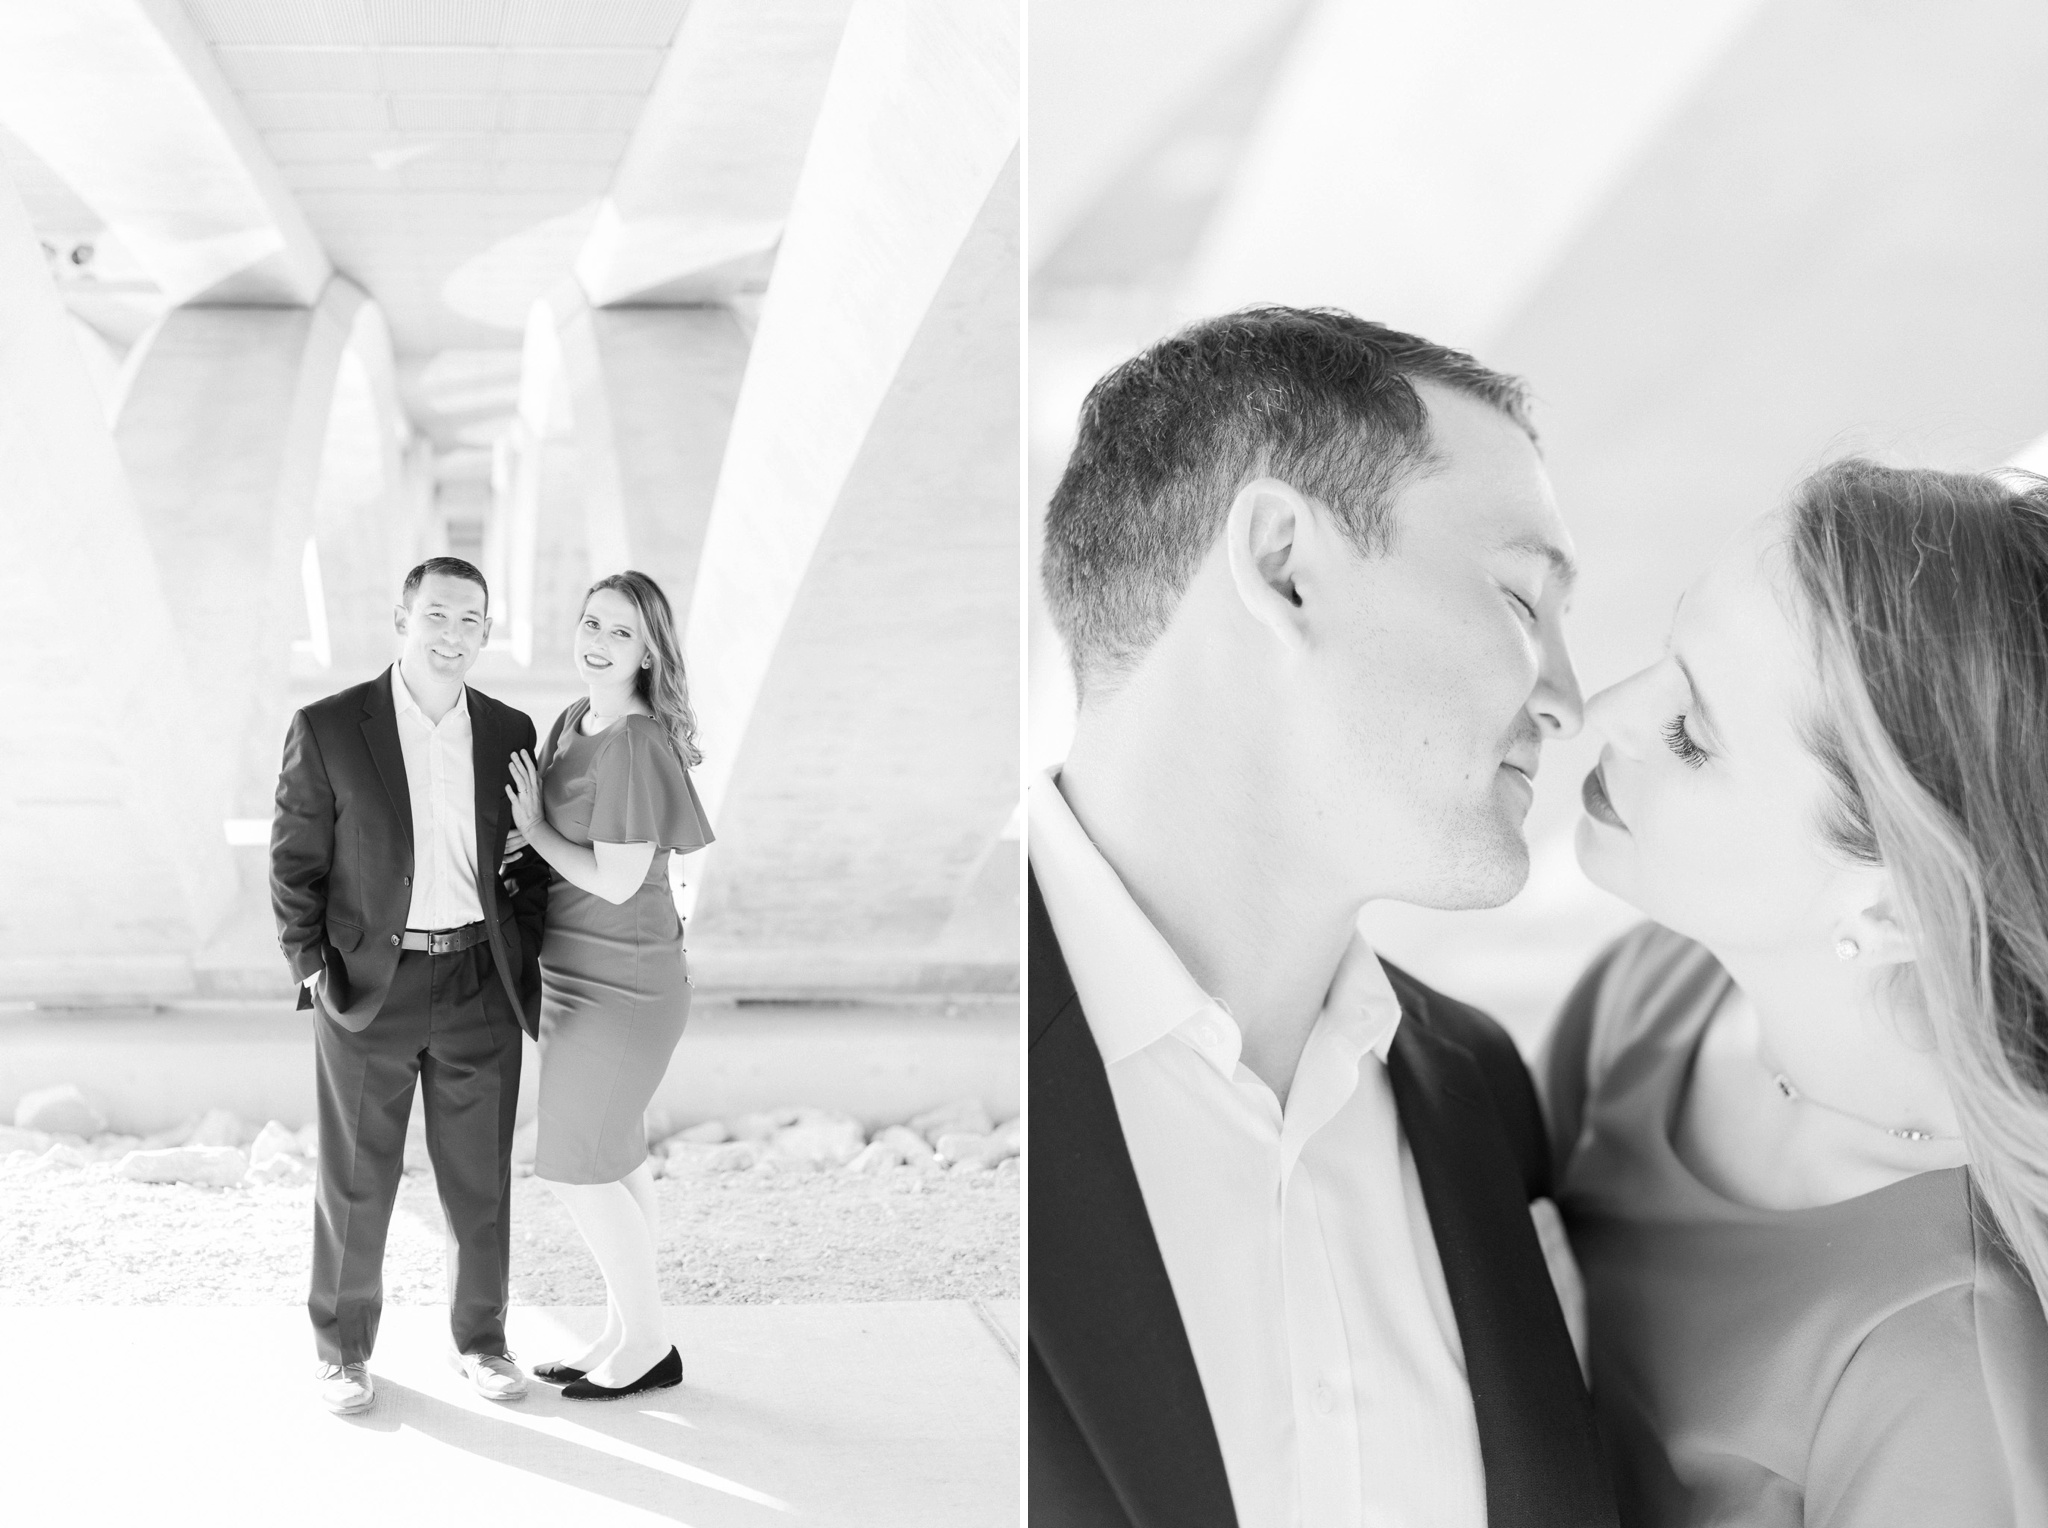 downtown-columbus-german-village-engagement-session-36.jpg